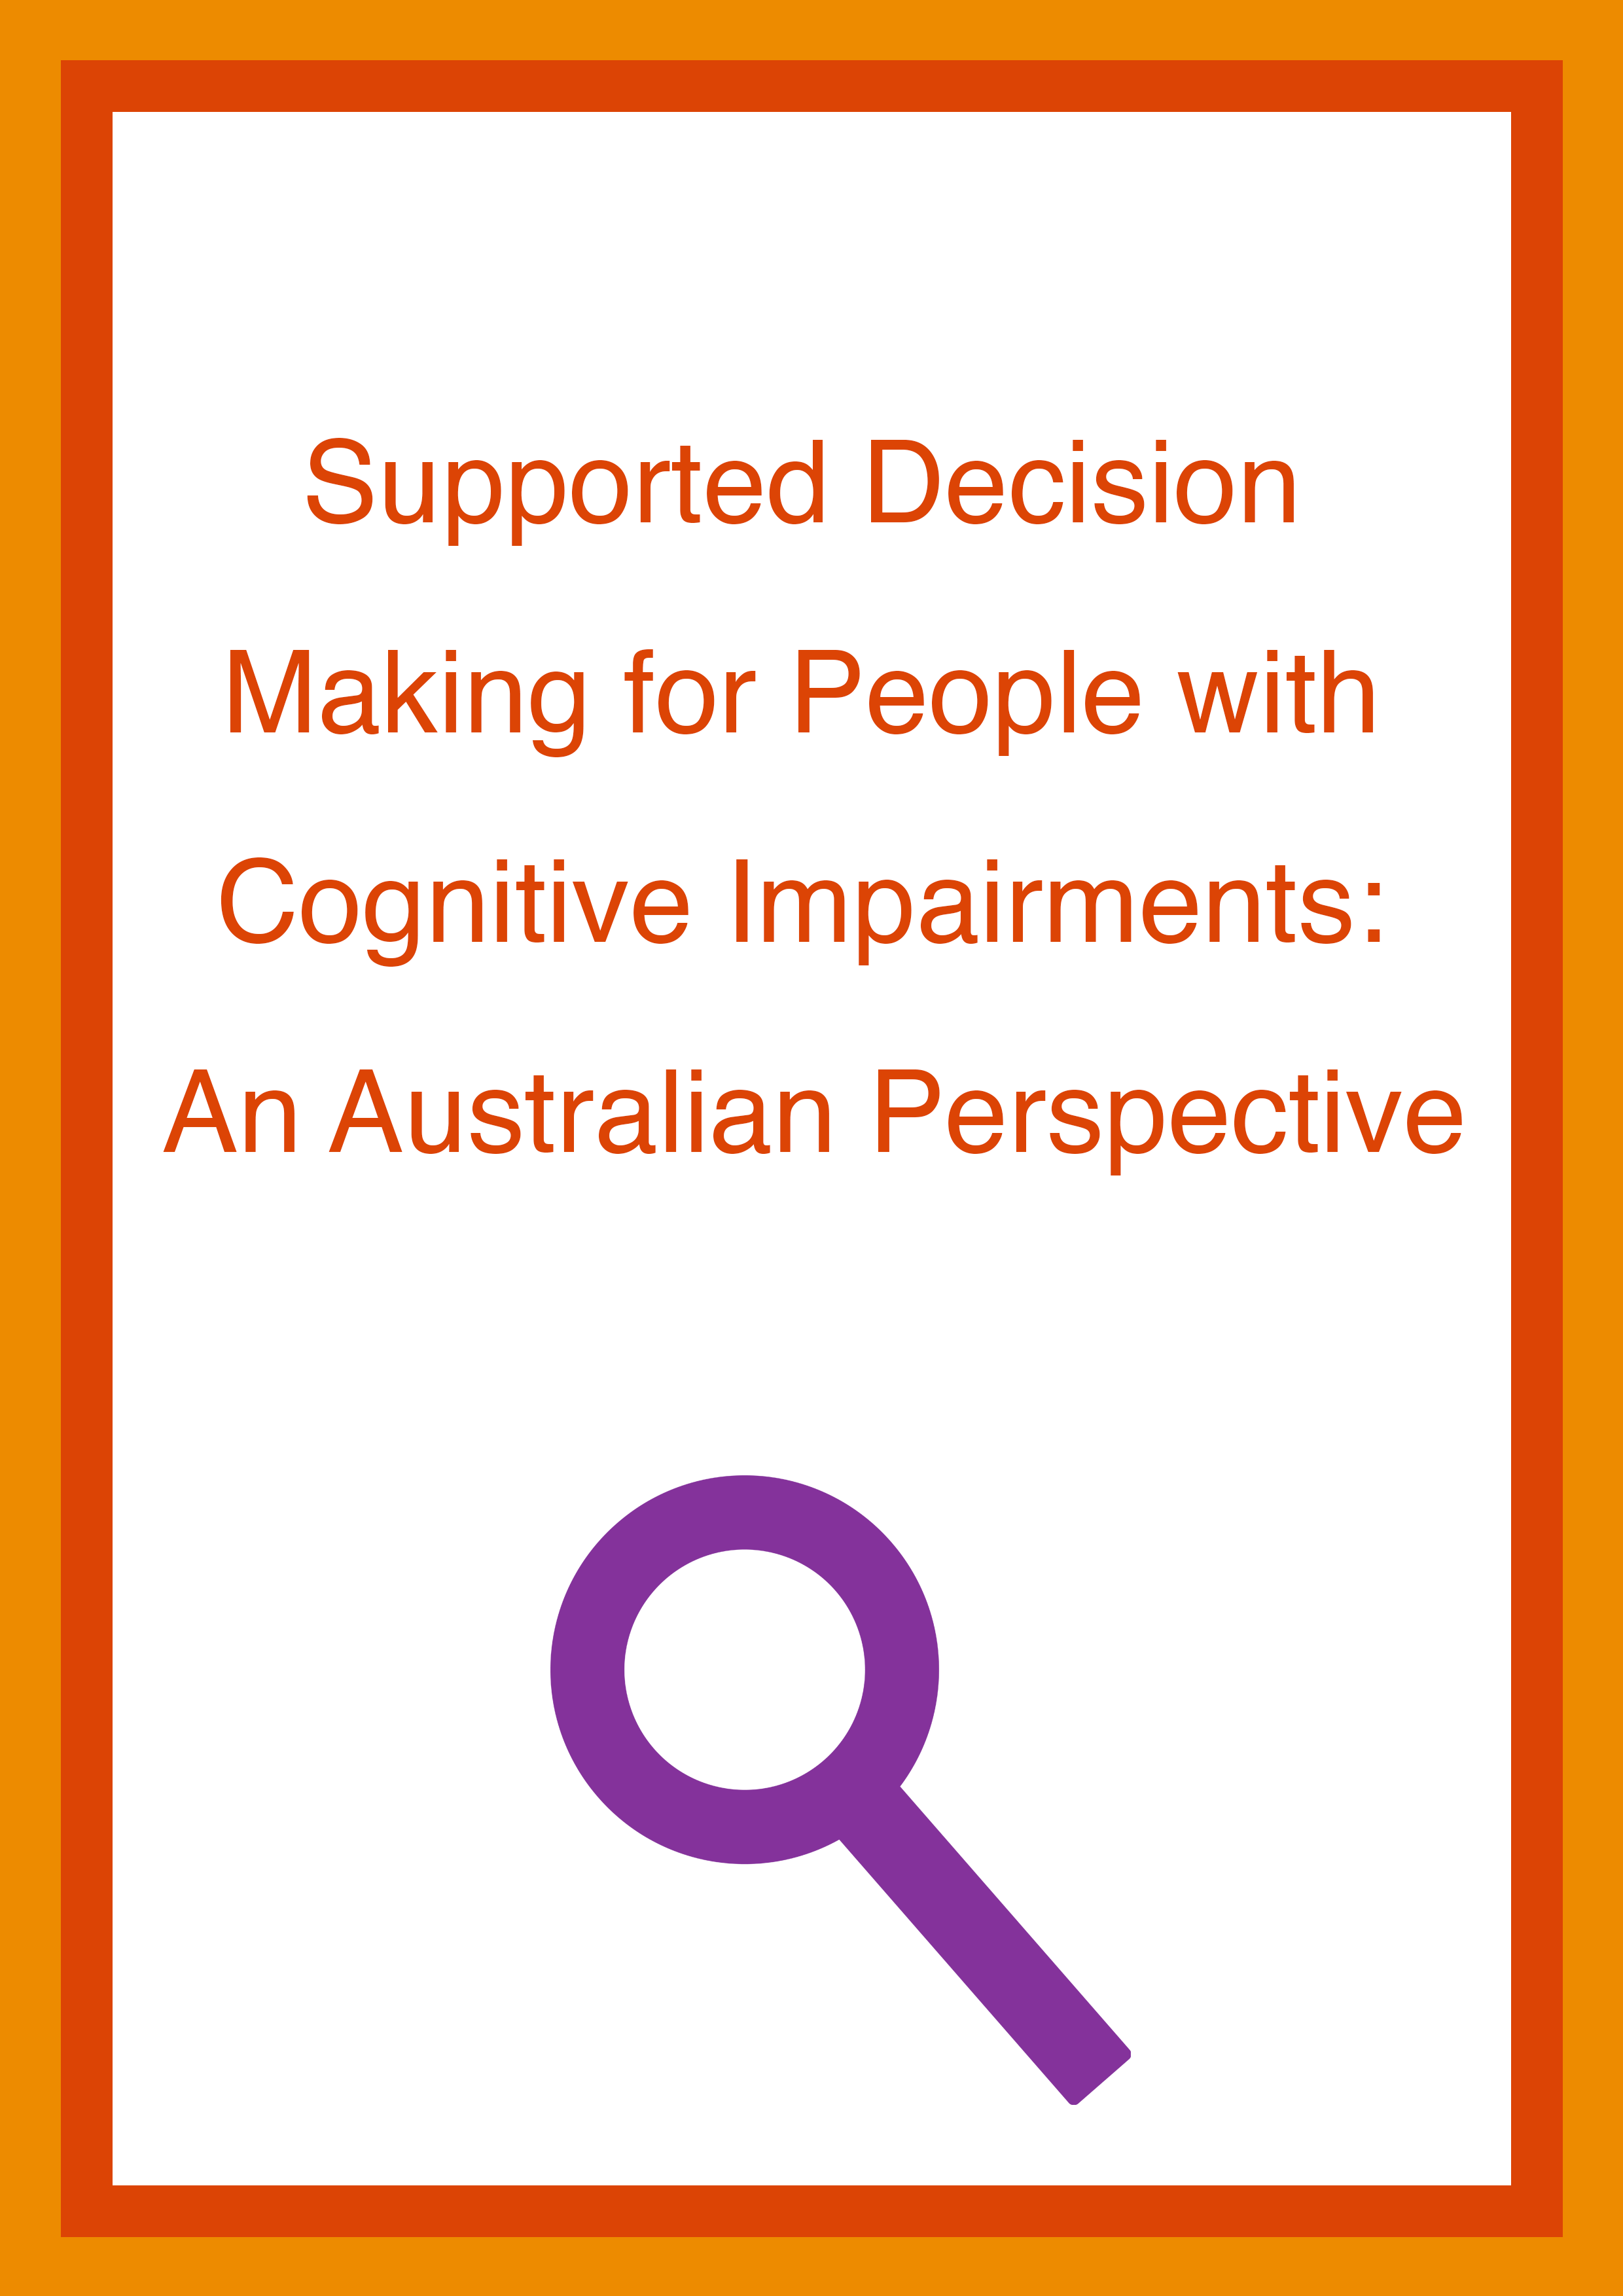 Cover art for: Supported Decision-Making for People with Cognitive Impairments: An Australian Perspective?